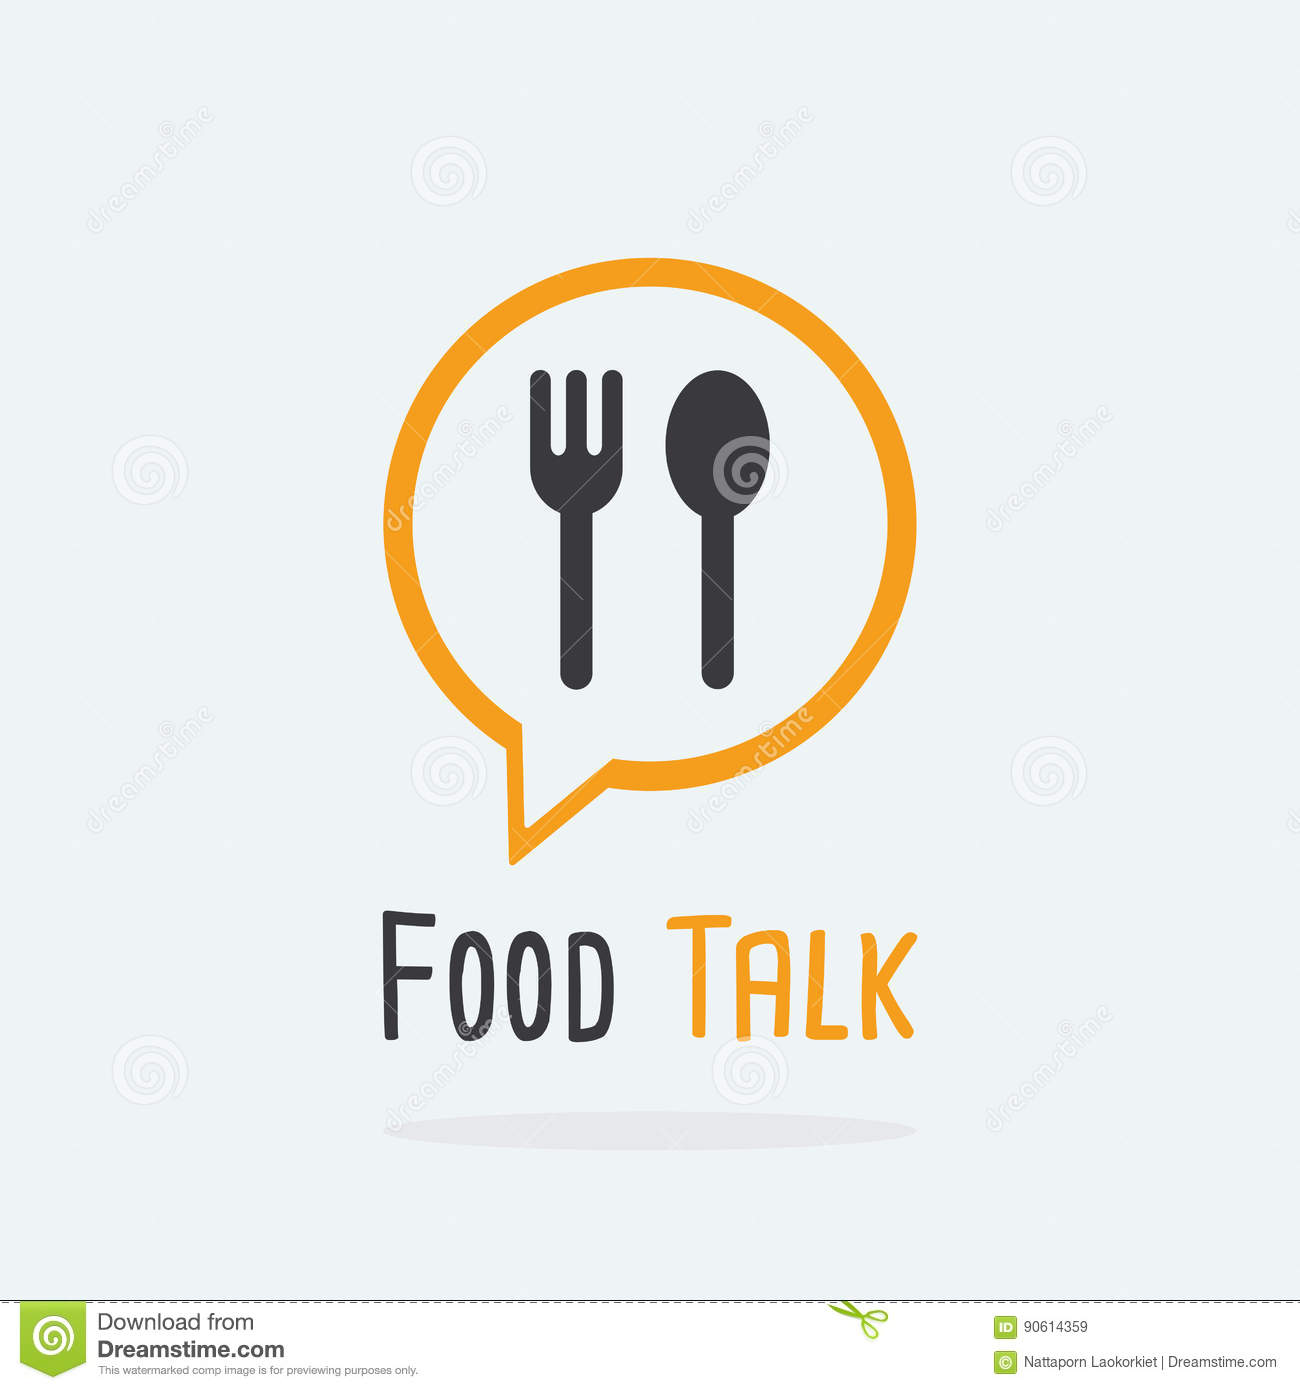 Food Talk logo concept with spoon and fork icon.